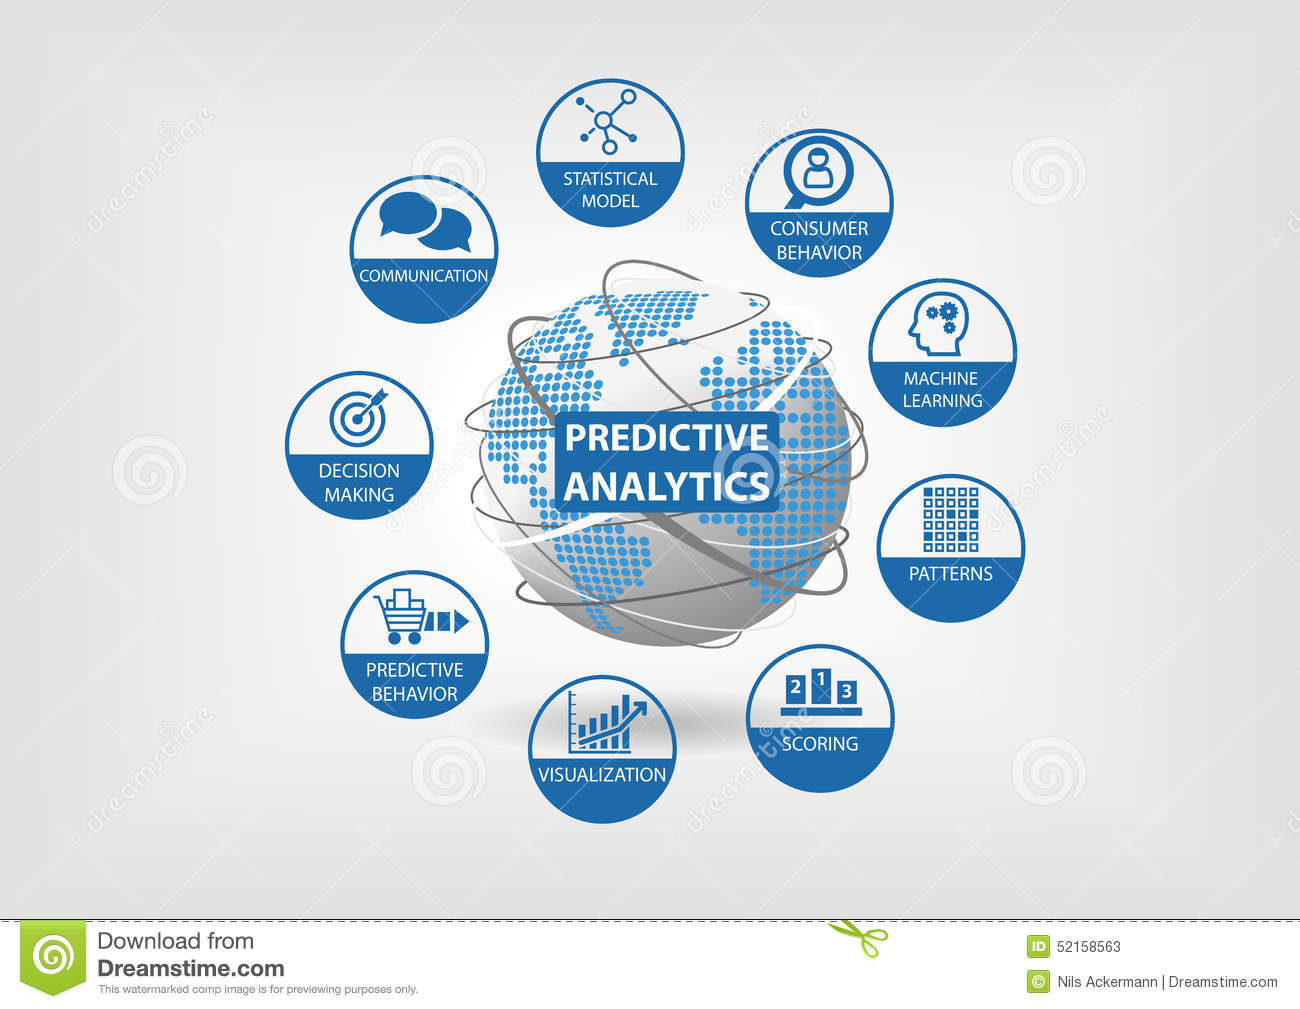 Predictive Web And Data Analytics Icons Globe And World Map With Predictive Web Data Analytics Icons Globe World Map Analytics Components Like Consumer Behavior Statistical Models  Stock Illustration Predictive Web Data Analytics Icons Globe World Map Analytics Components Like Consumer Behavior Statistical Models Image